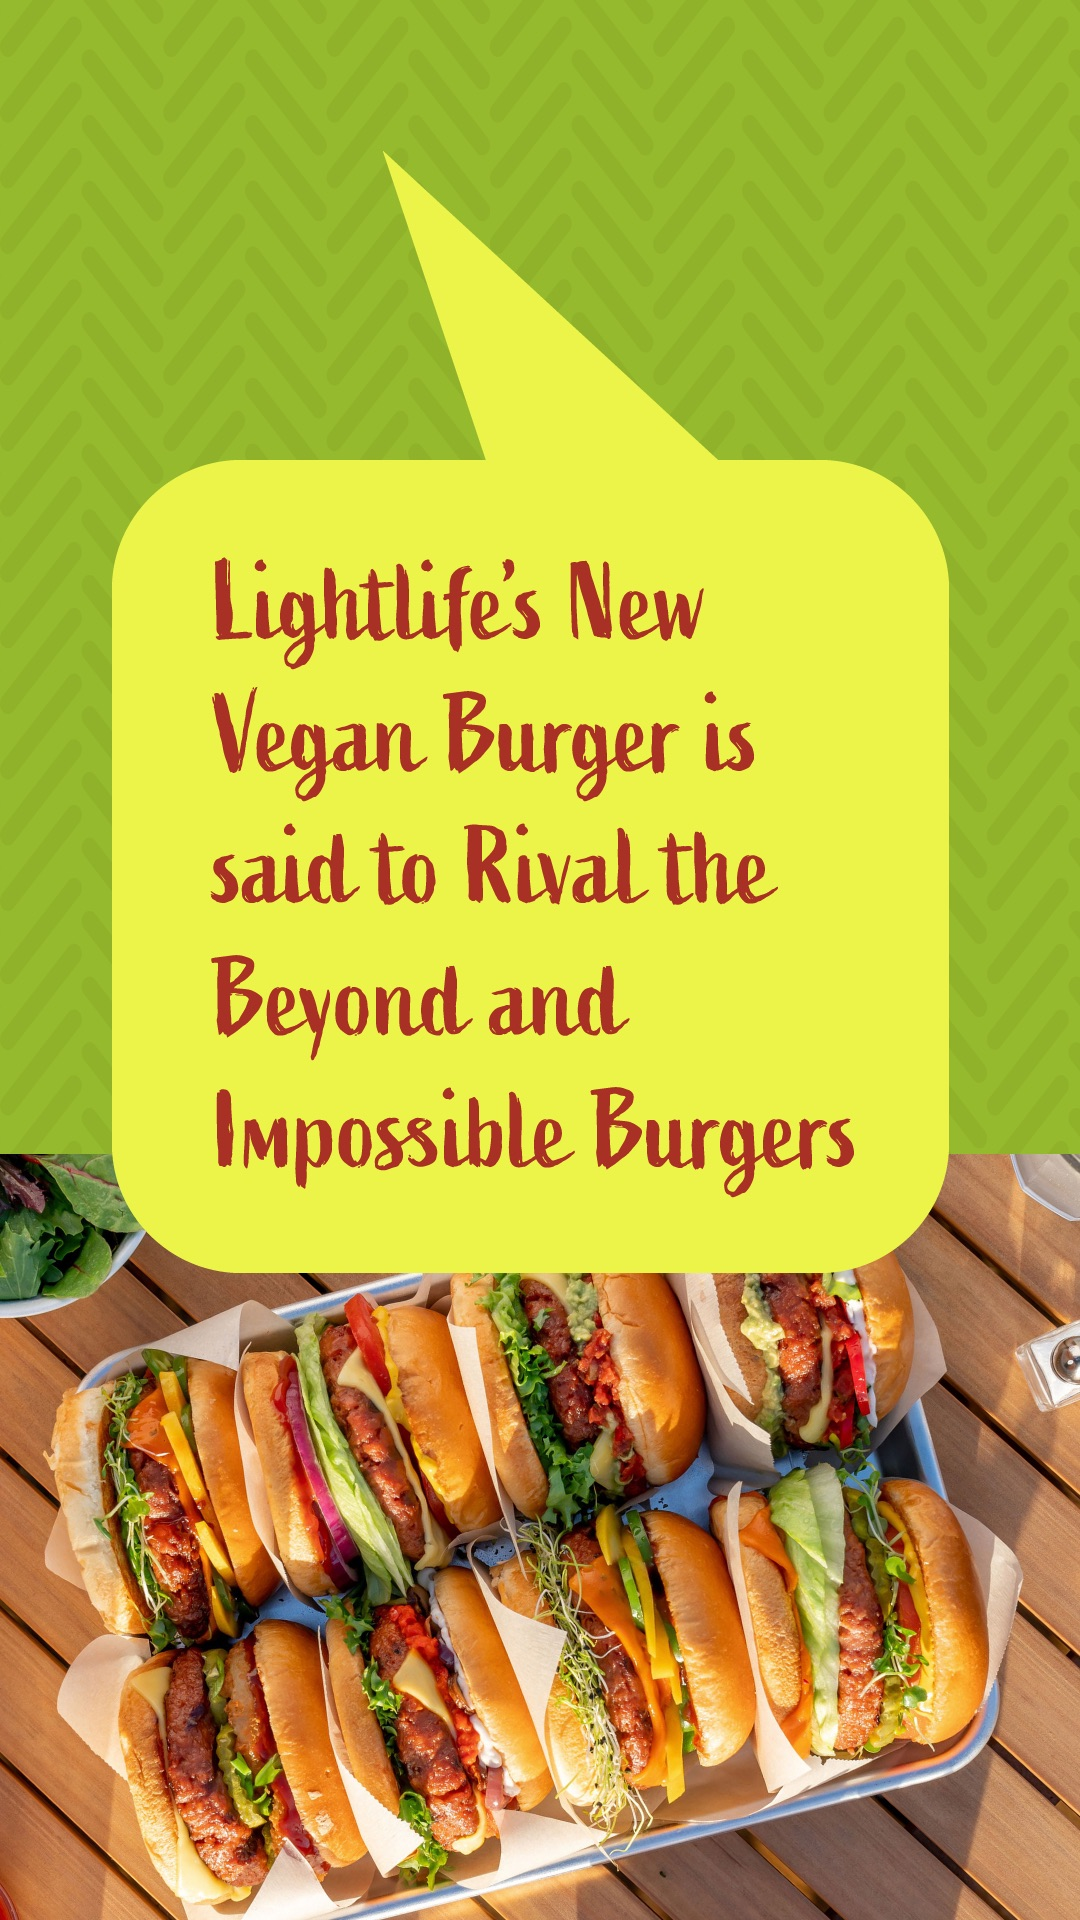 Lightlife's New Vegan Burger Is Said to Rival the Beyond and Impossible Burgers